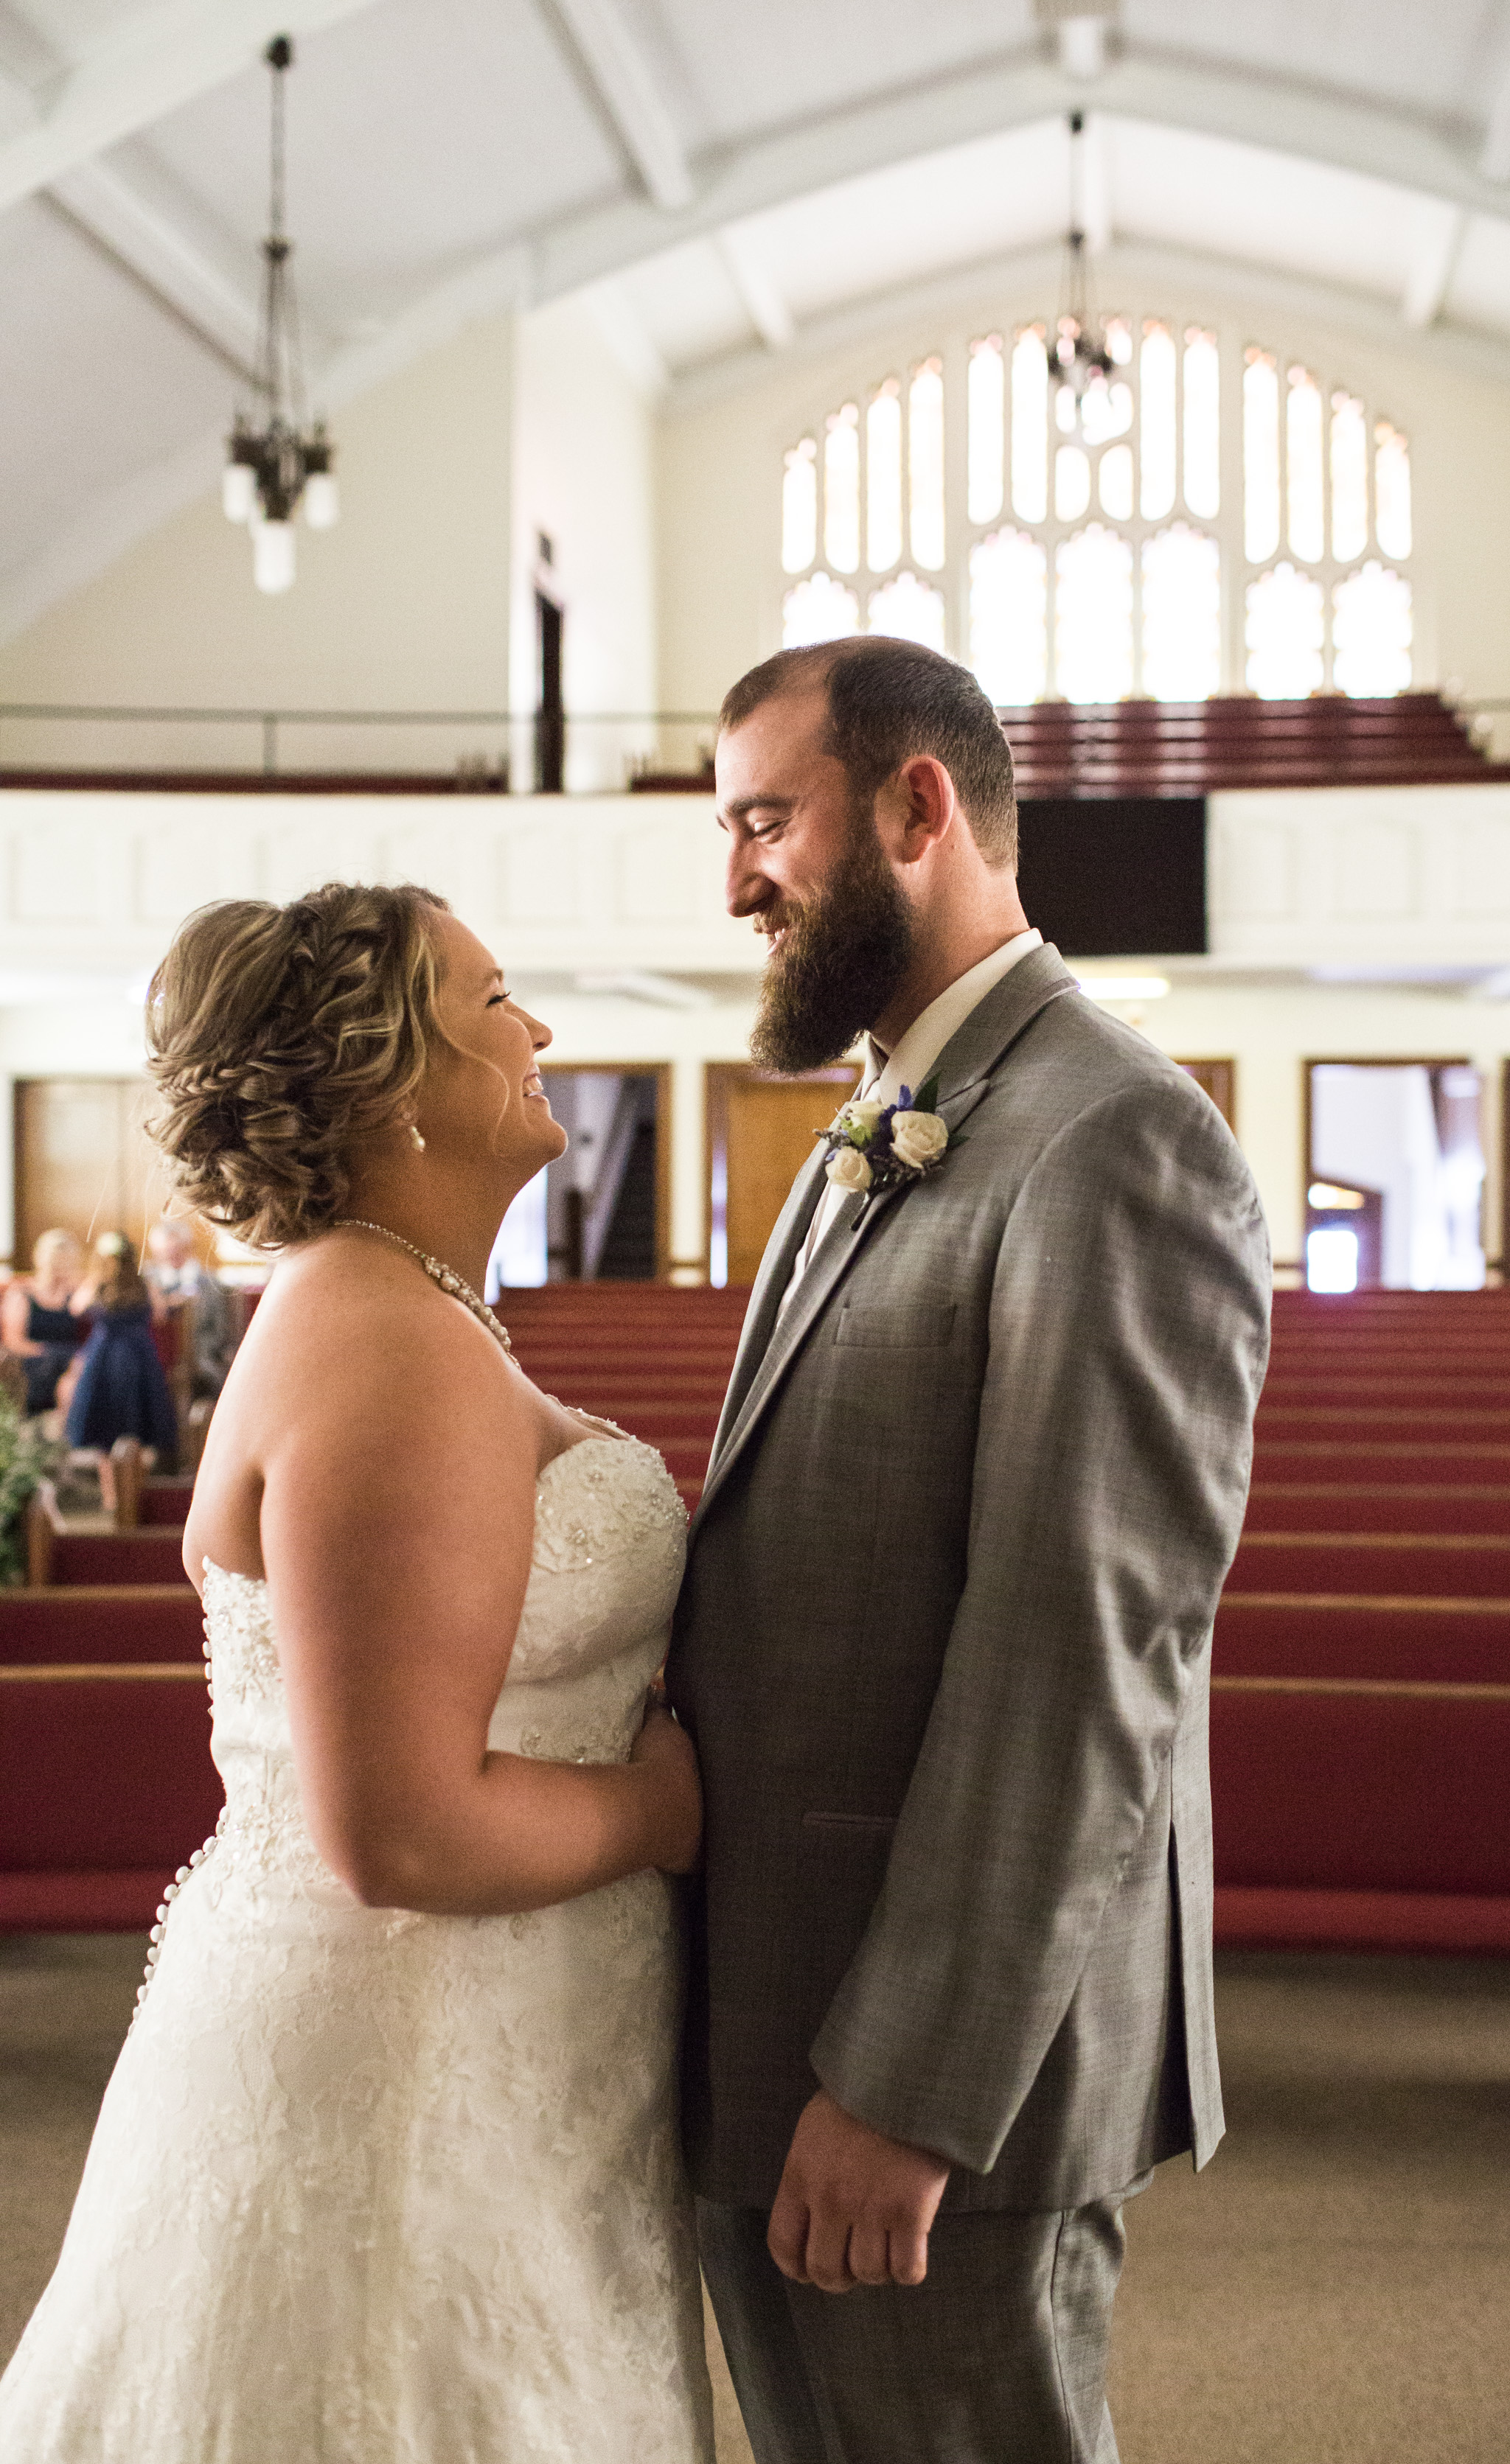 Zibell Spring Wedding, Bride and Groom, Powerful, Connected, Exploration, Laura Duggleby Photography -77.JPG